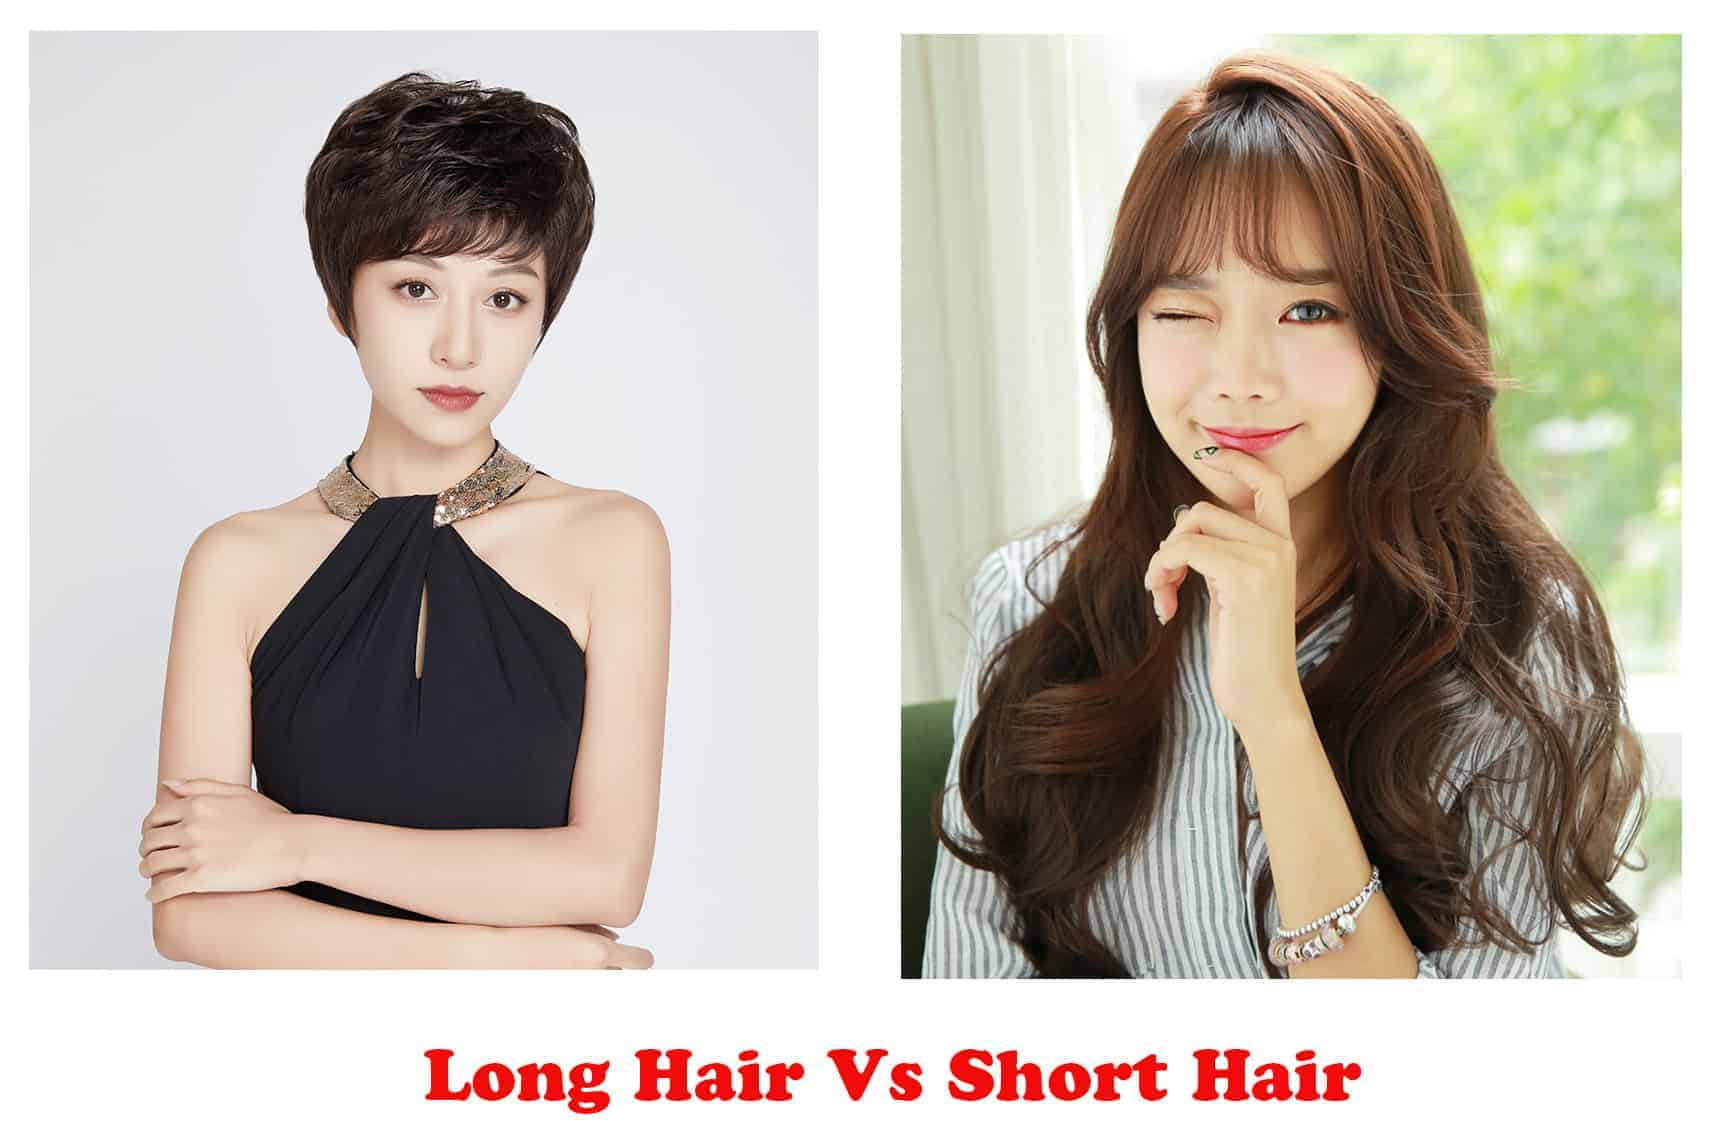 Long Hair Vs Short Hair: The Different Long and Short Hairstyles